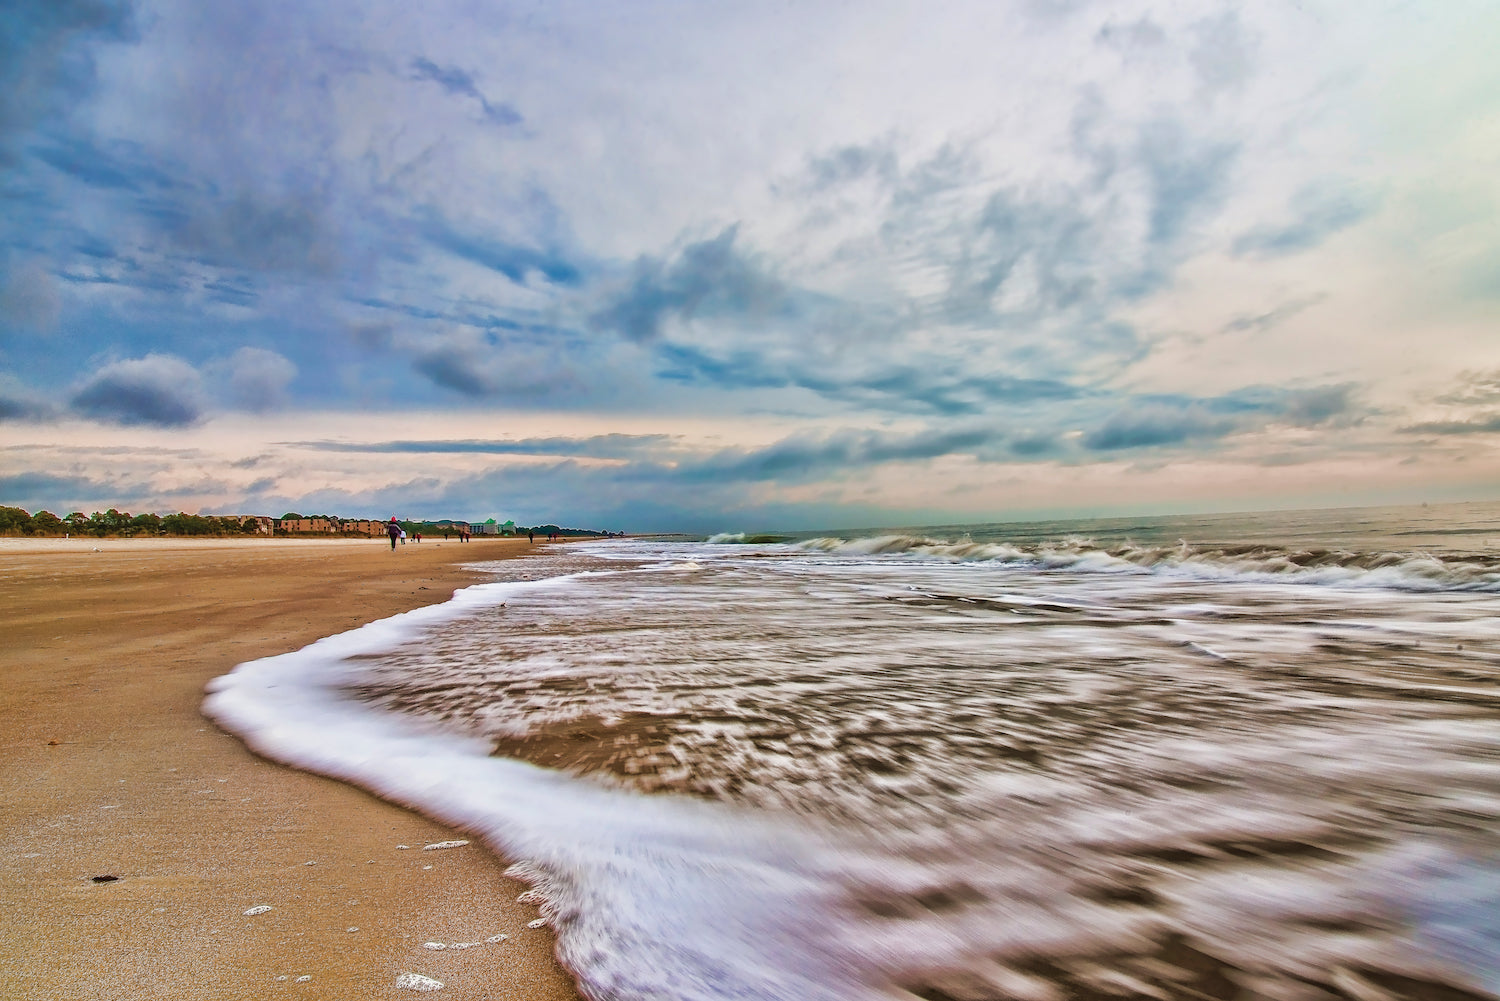 Breath taking beach and sea photograph from Hilton Head Island - Interactive Book. Published by Starbooks